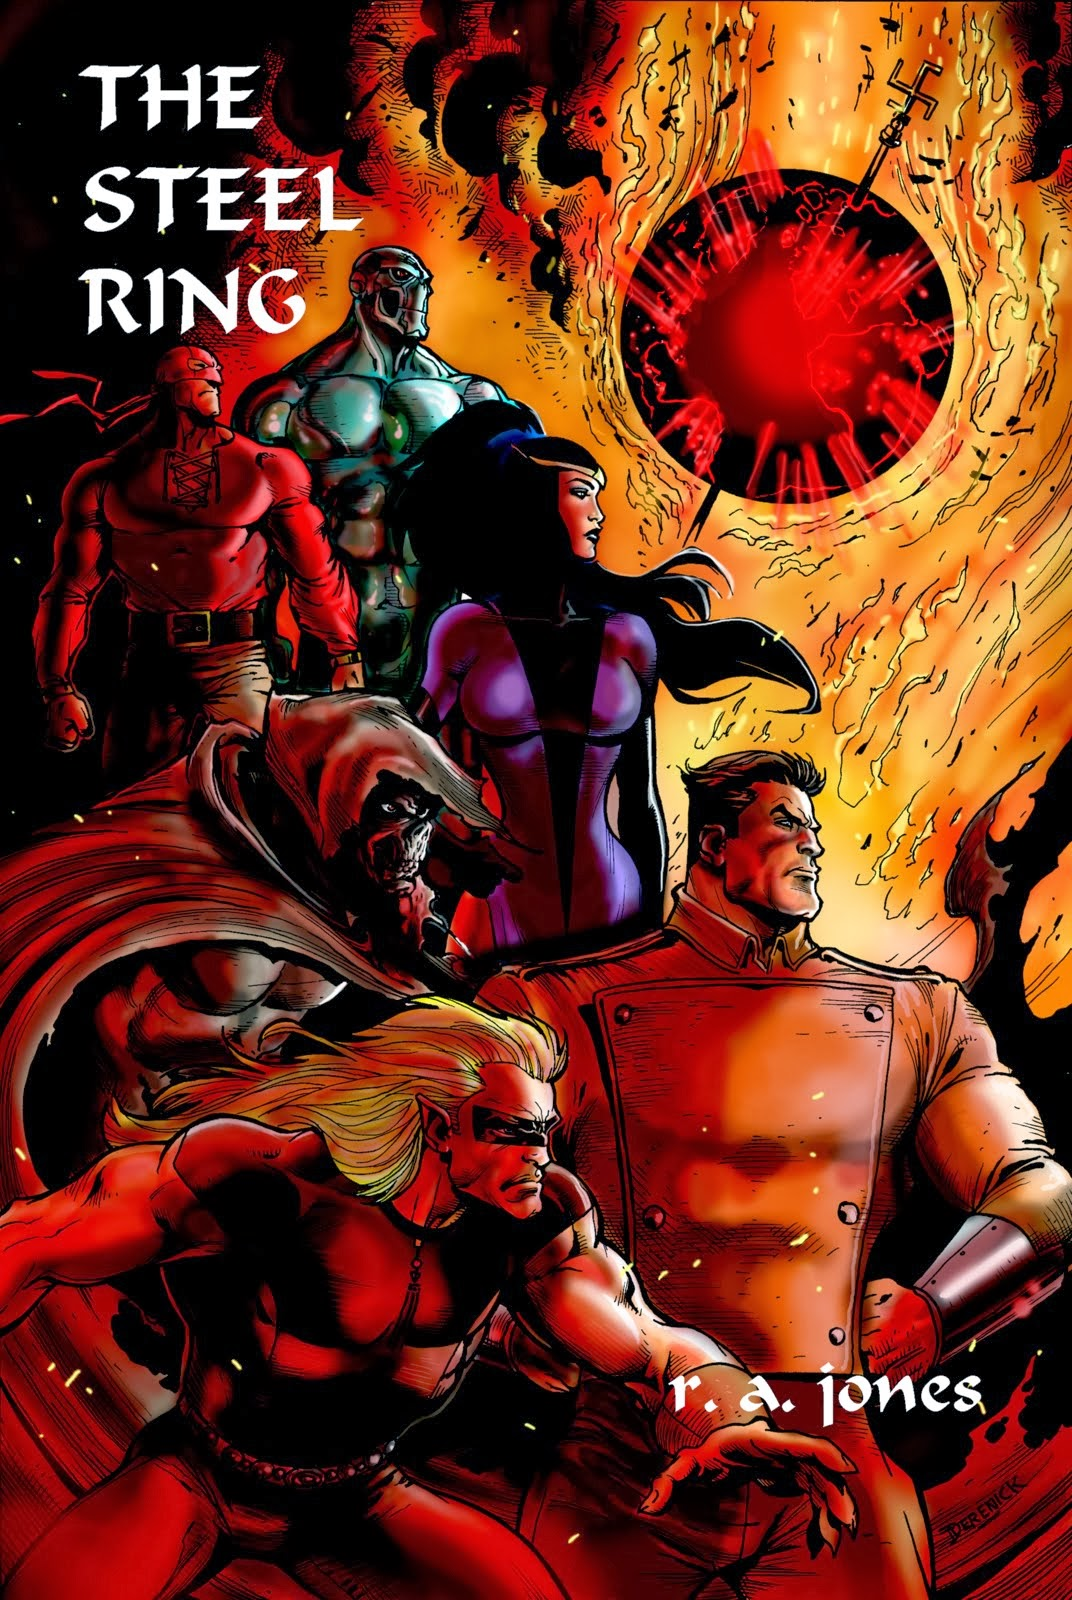 The Steel Ring